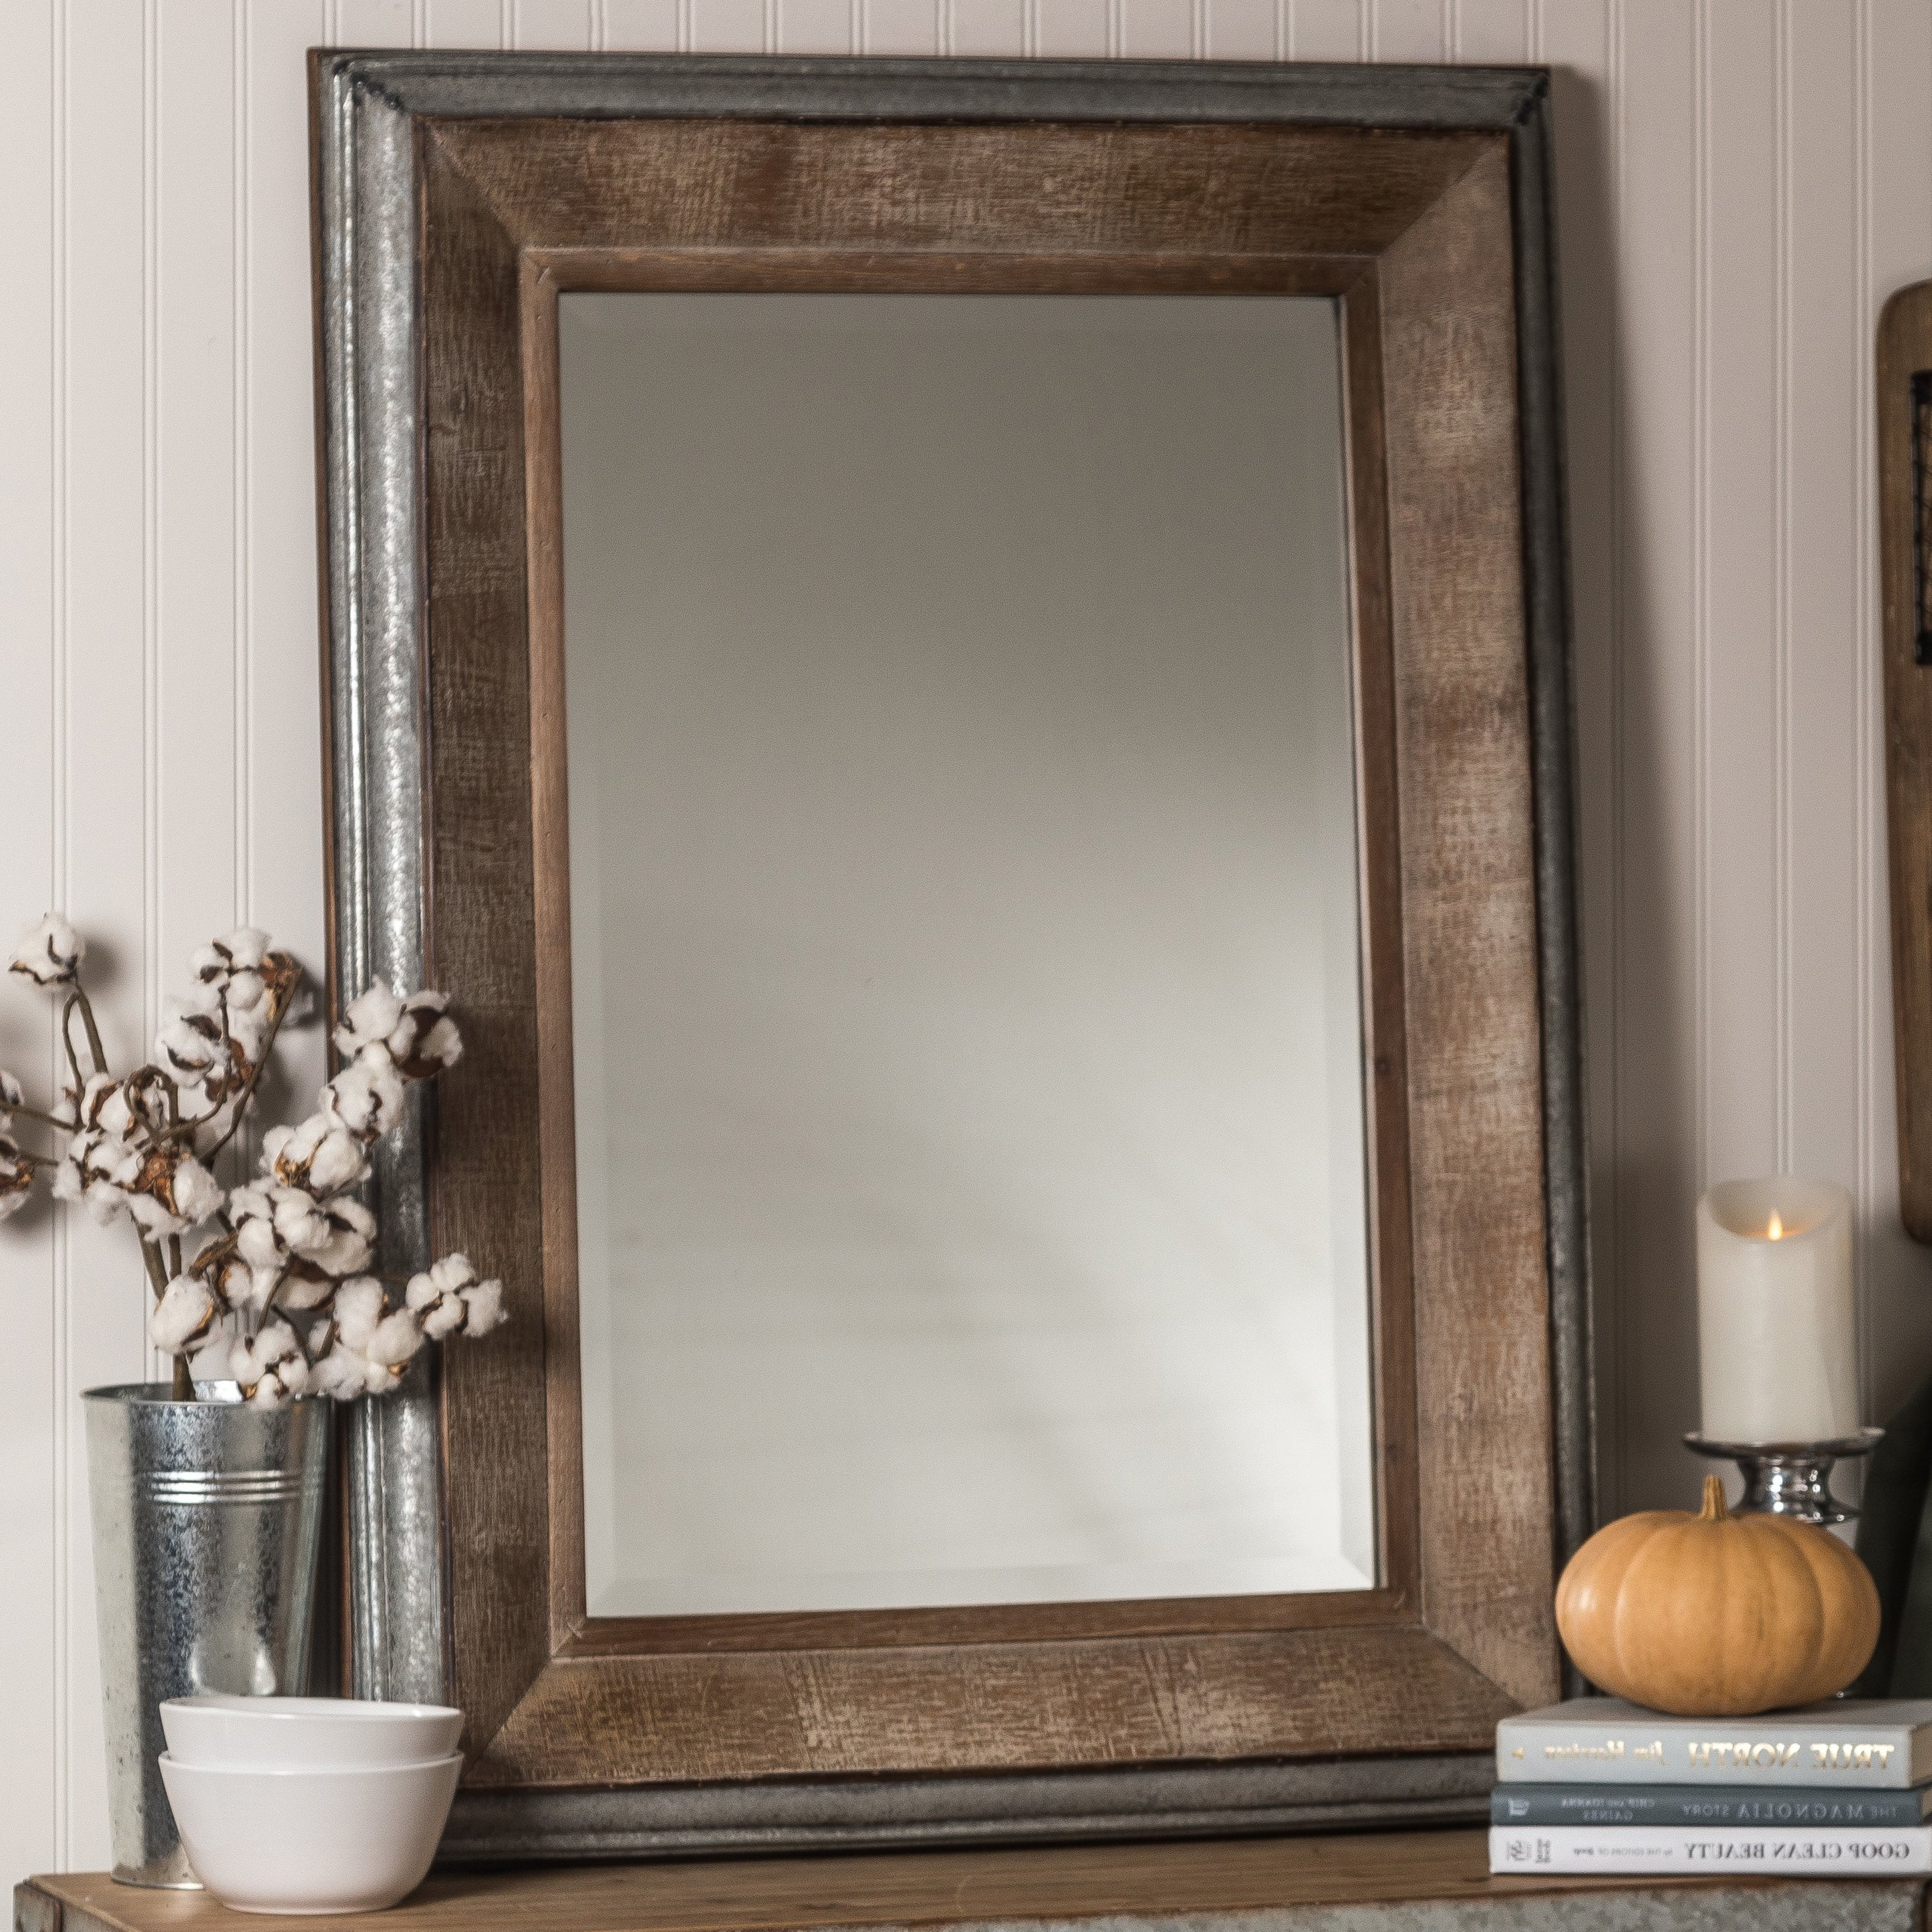 Hatten Modern & Contemporary Beveled Accent Mirror Within Recent Berinhard Accent Mirrors (View 10 of 20)